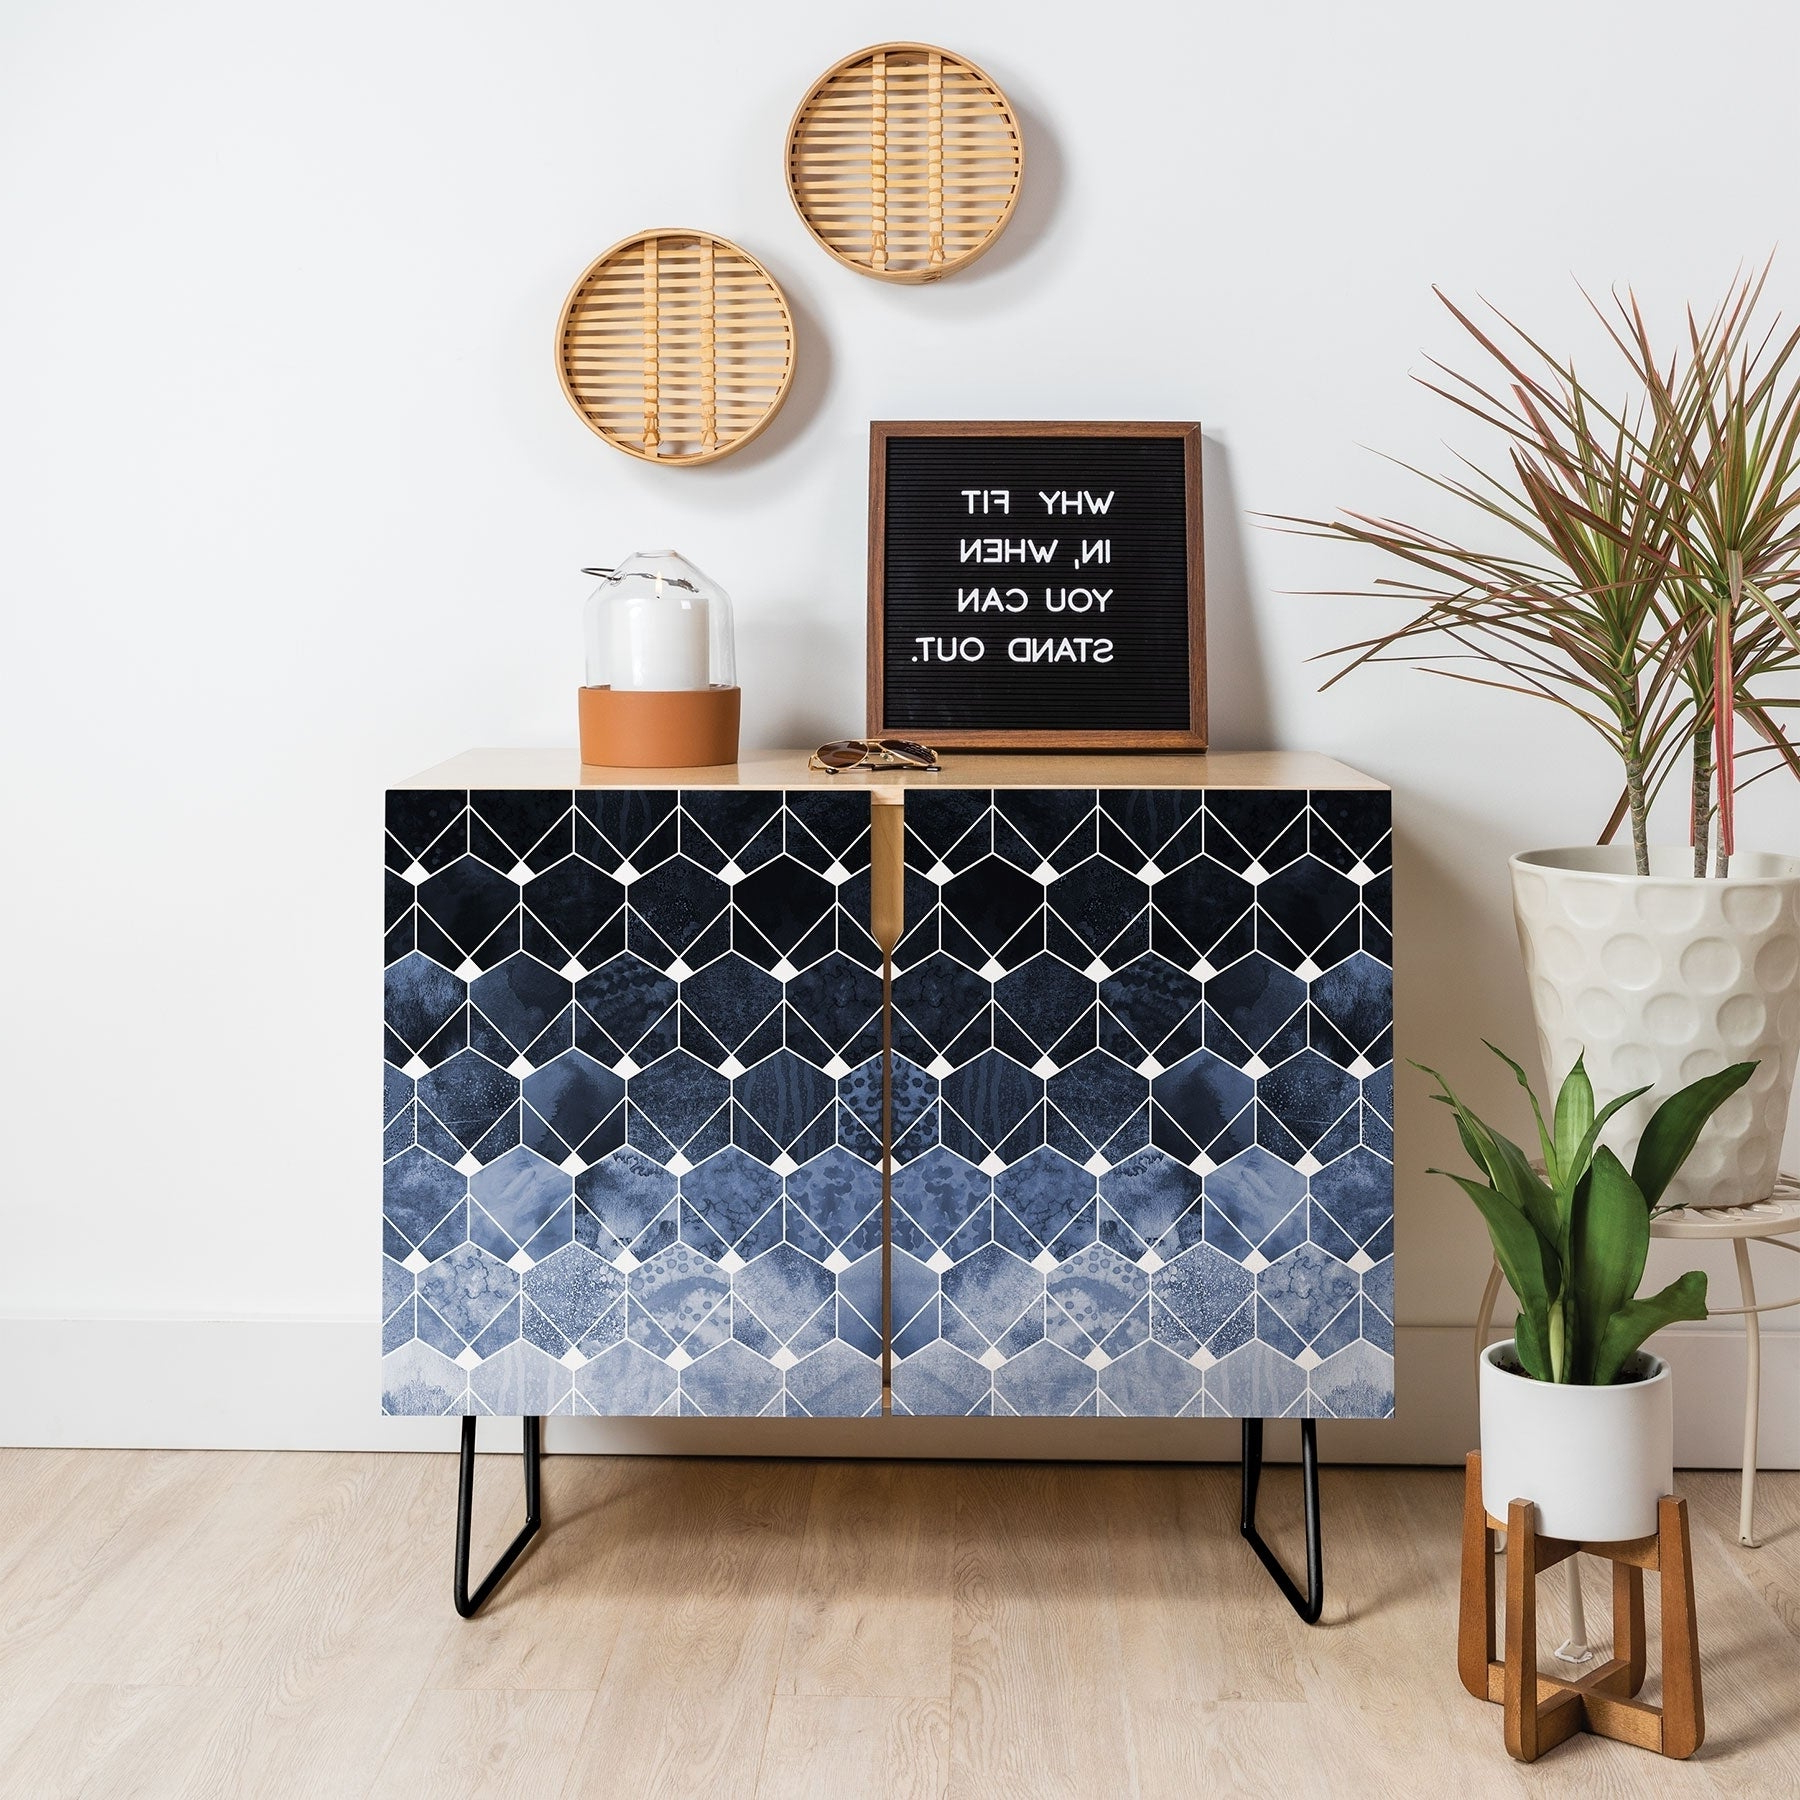 Deny Designs Blue Hexagons And Diamonds Credenza (Birch Or Walnut, 2 Leg Options) With Regard To Exagonal Geometry Credenzas (View 8 of 20)